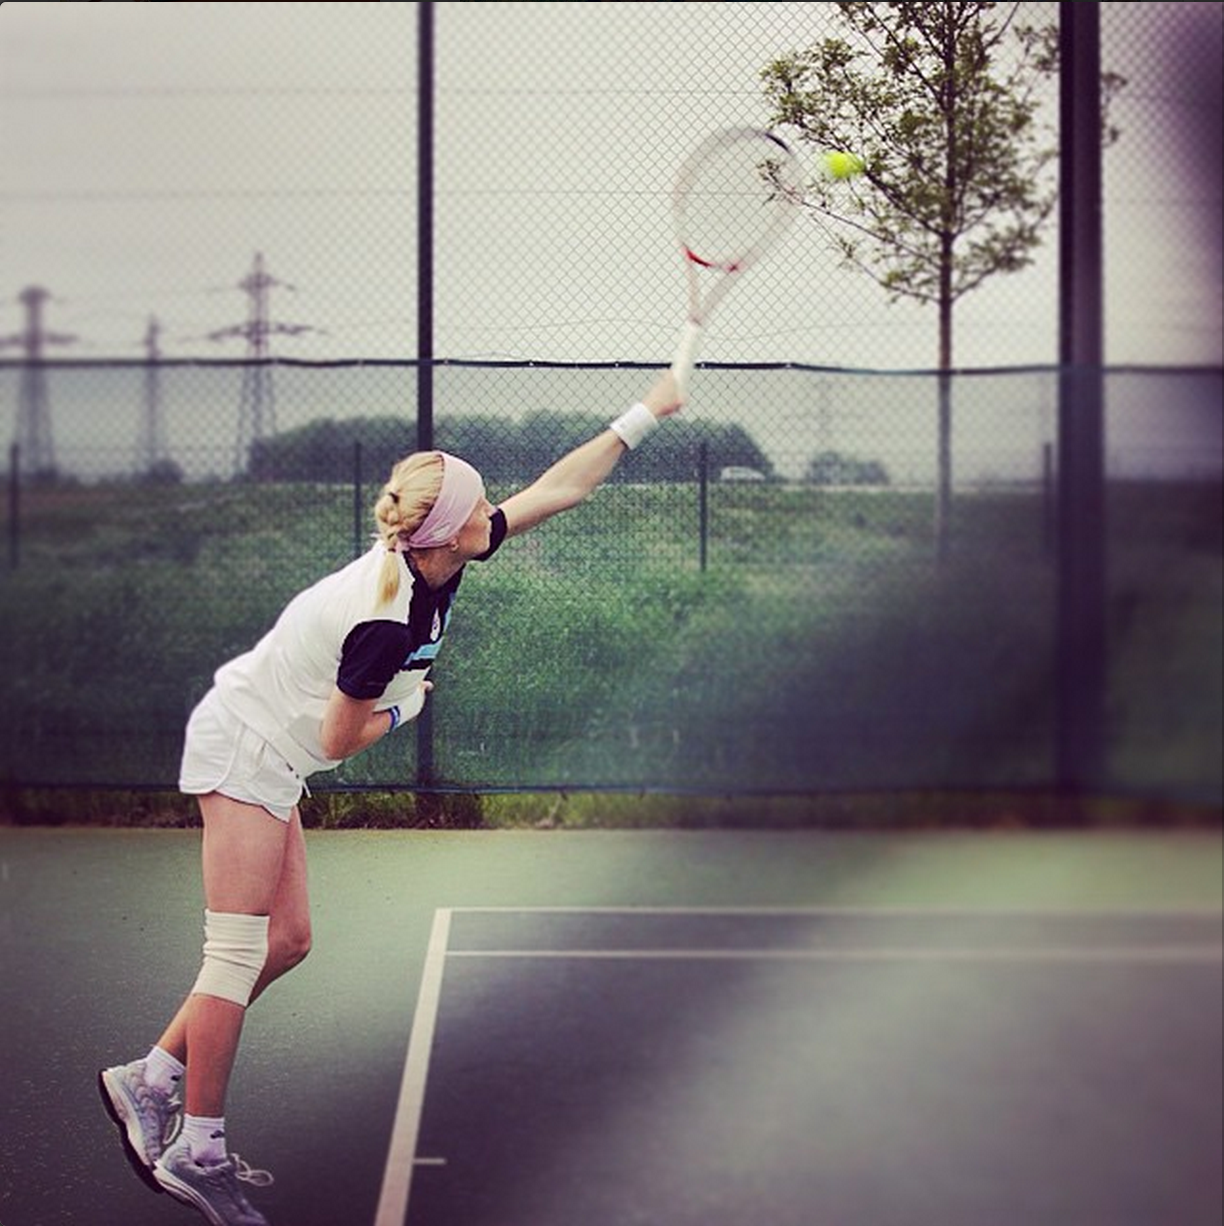 #24.  IE tennis, before MBAT semifinals!  (via  yulzhu )